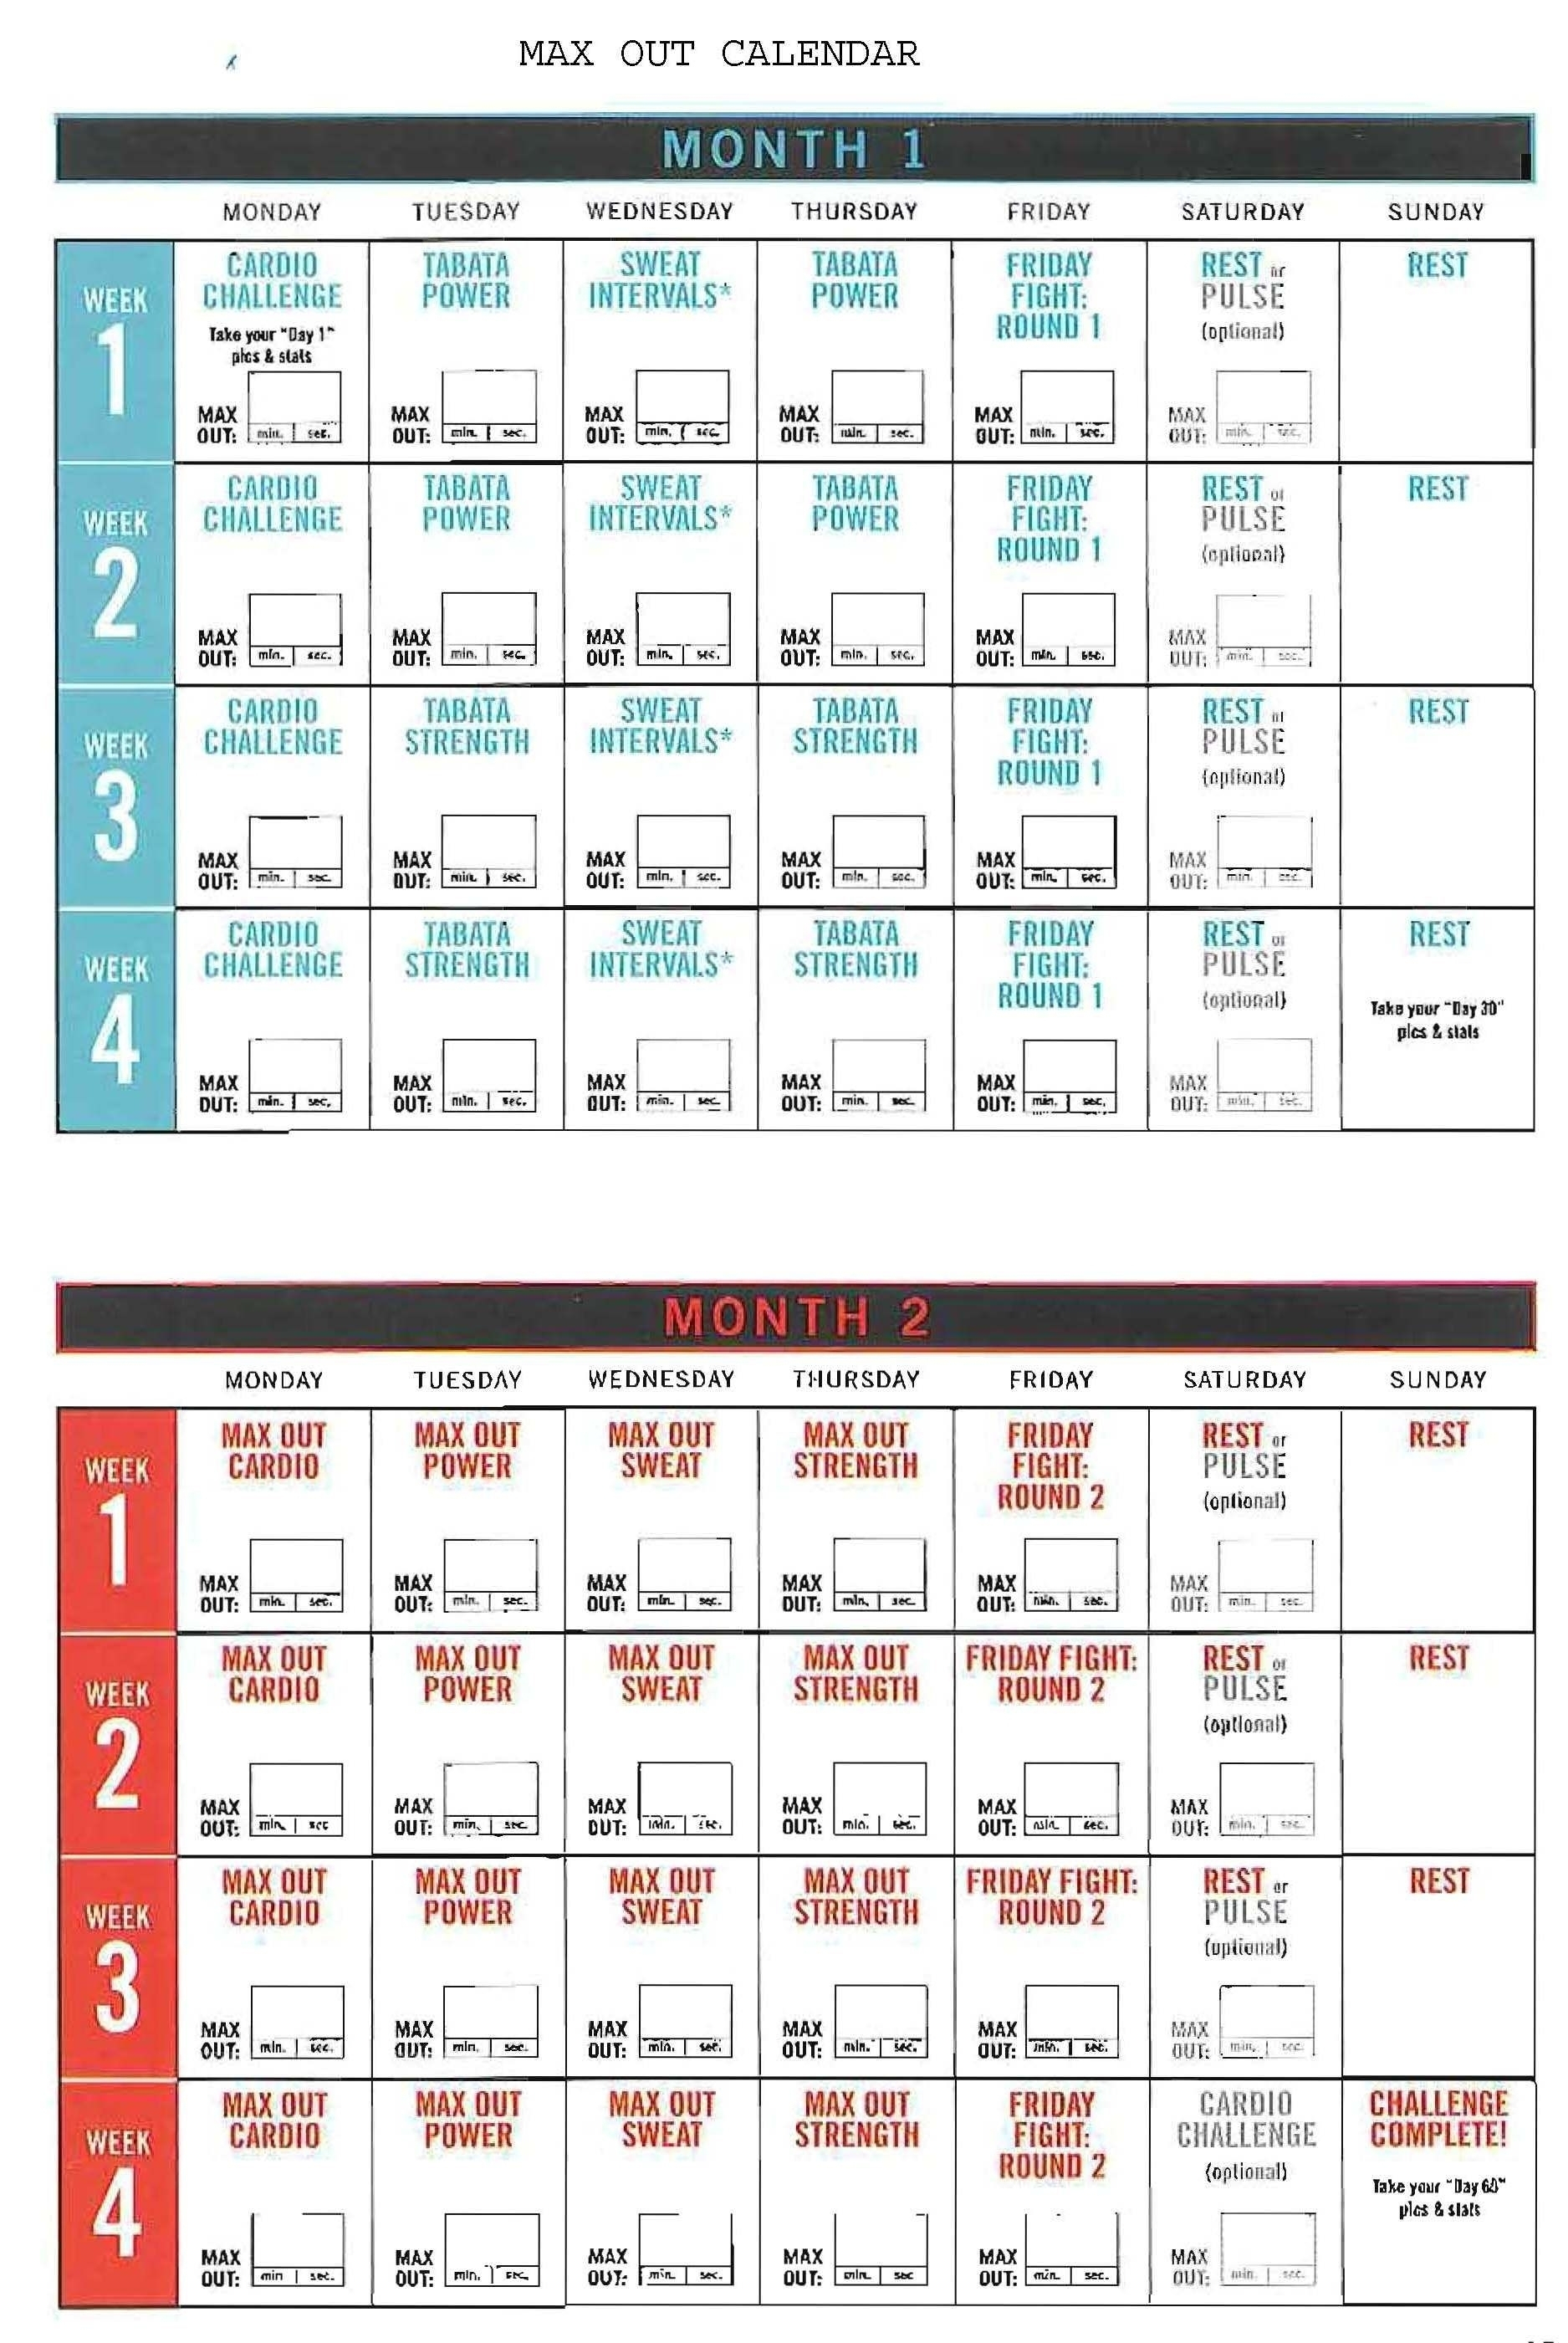 Insanity Calendar Print Out | Monthly Printable Calender within Max 30 Calendar Pdf